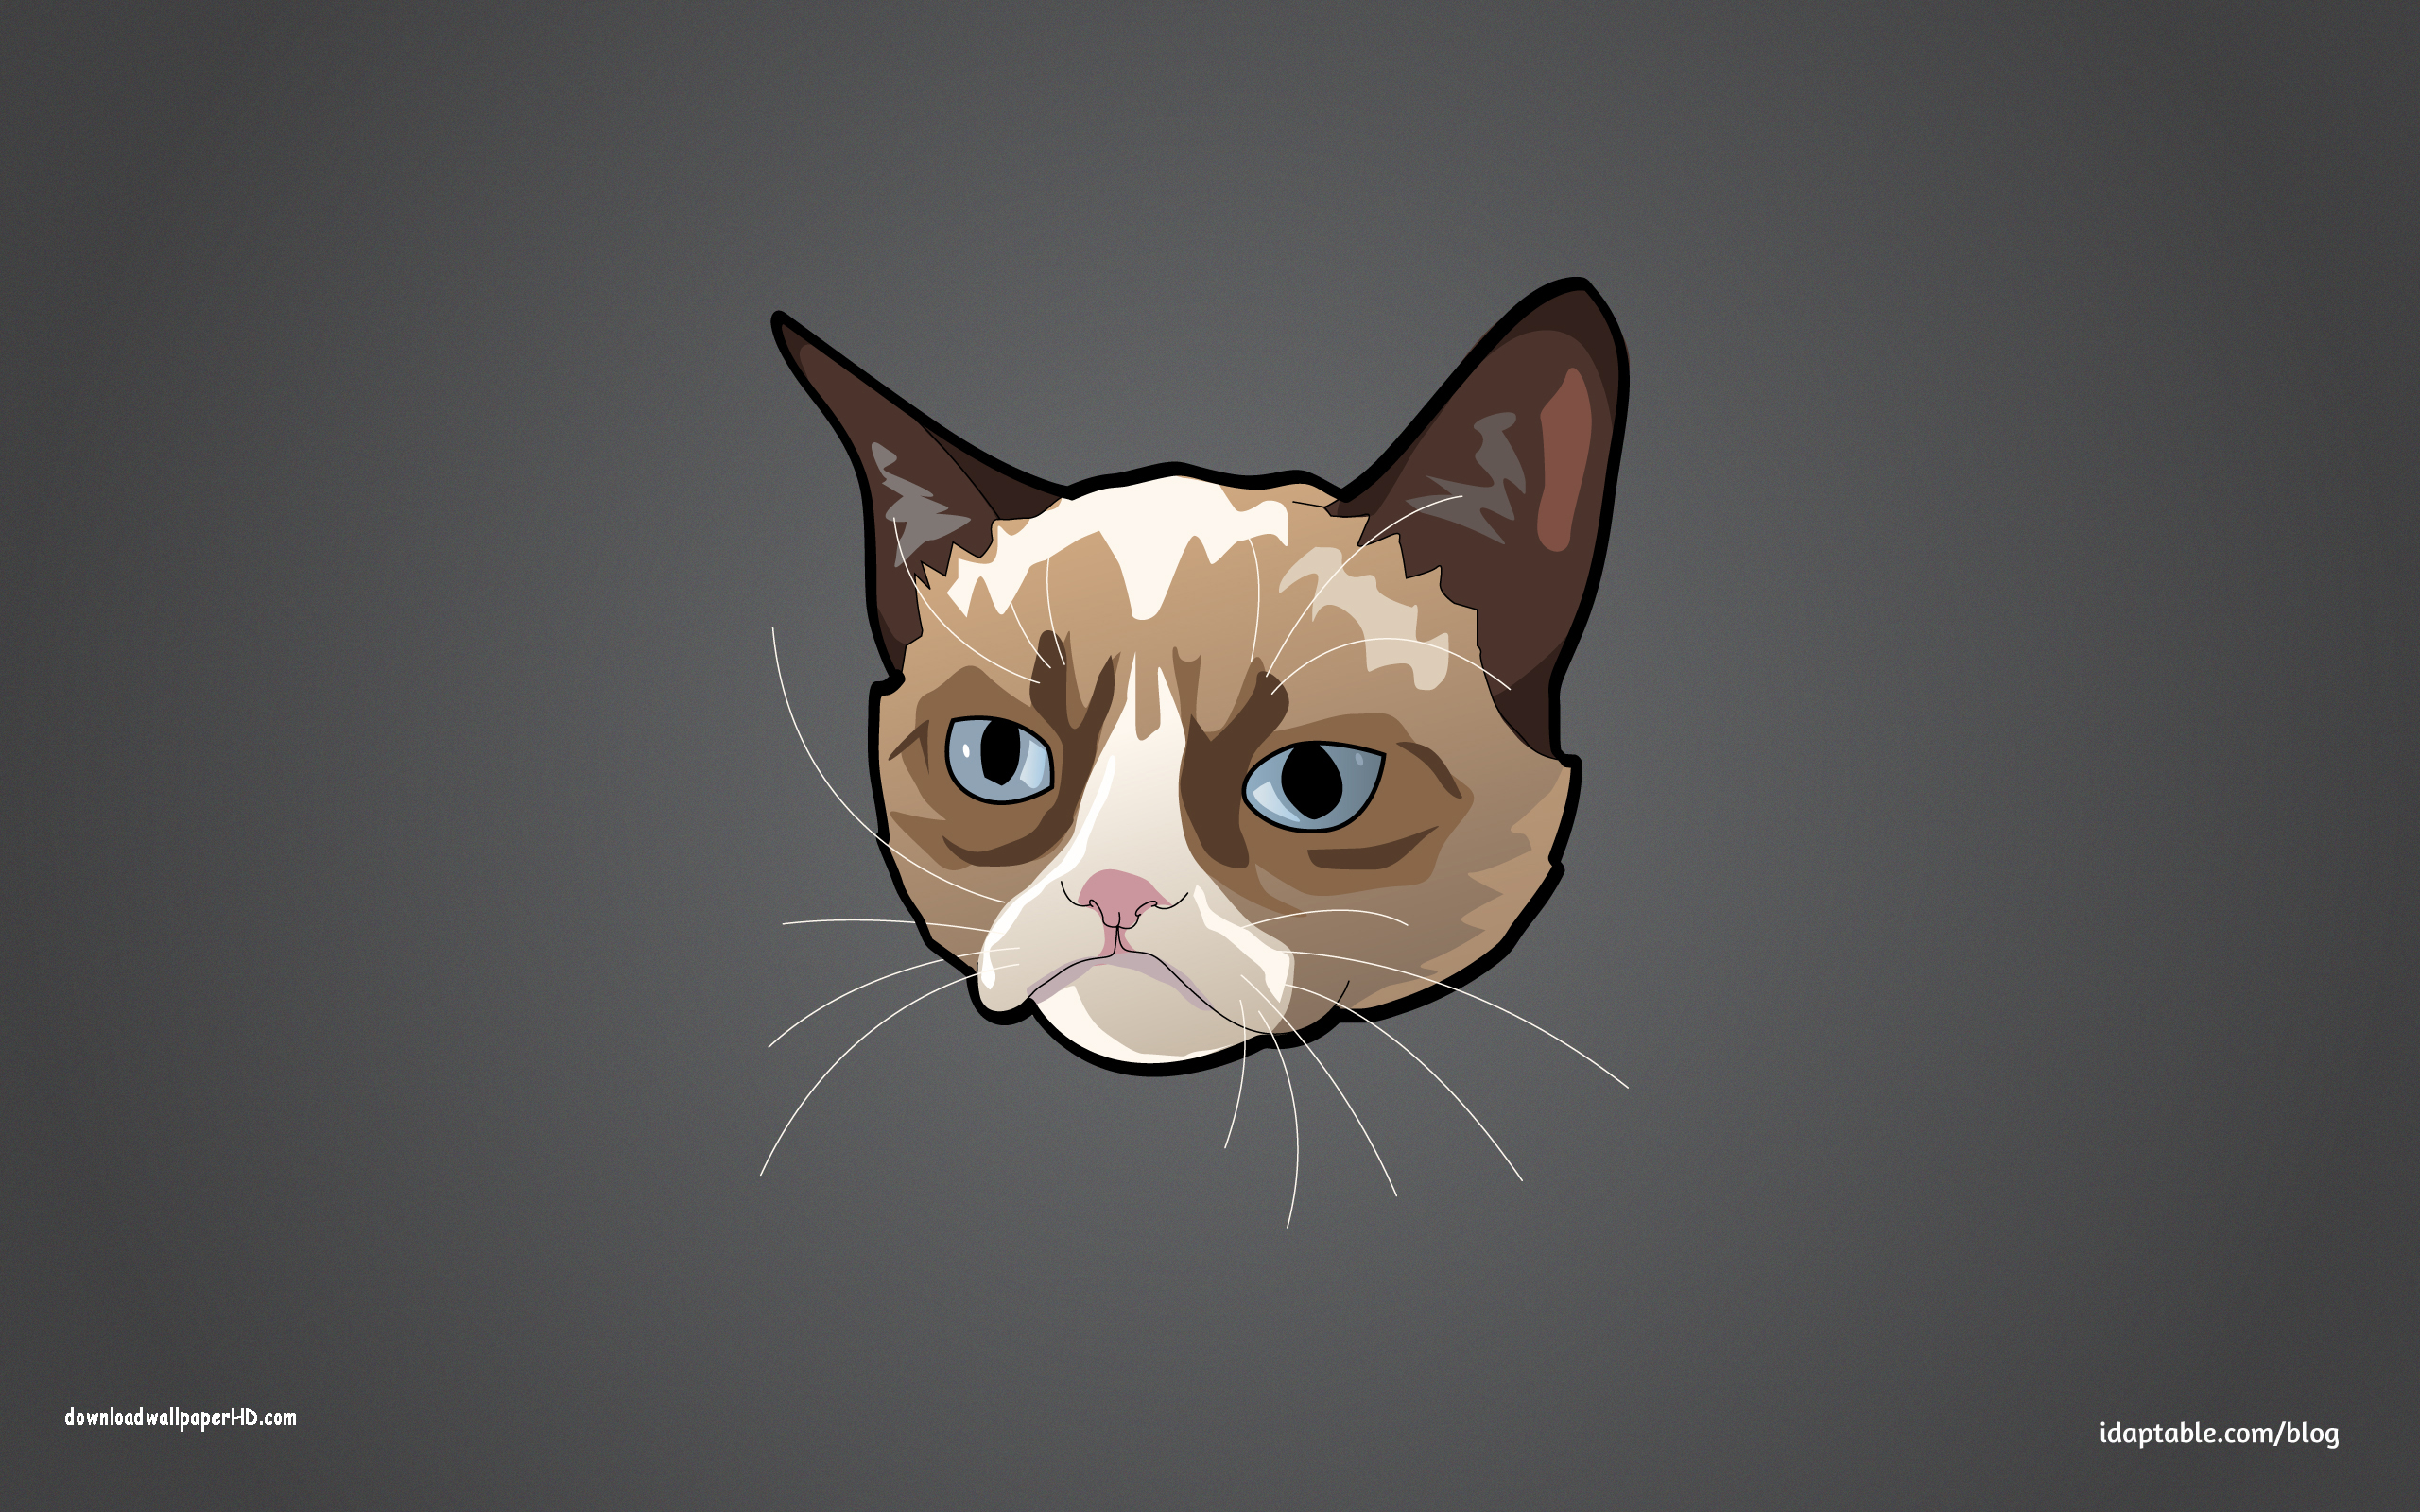 Grumpy cat iphone wallpaper wallpapersafari - Cat wallpaper cartoon ...